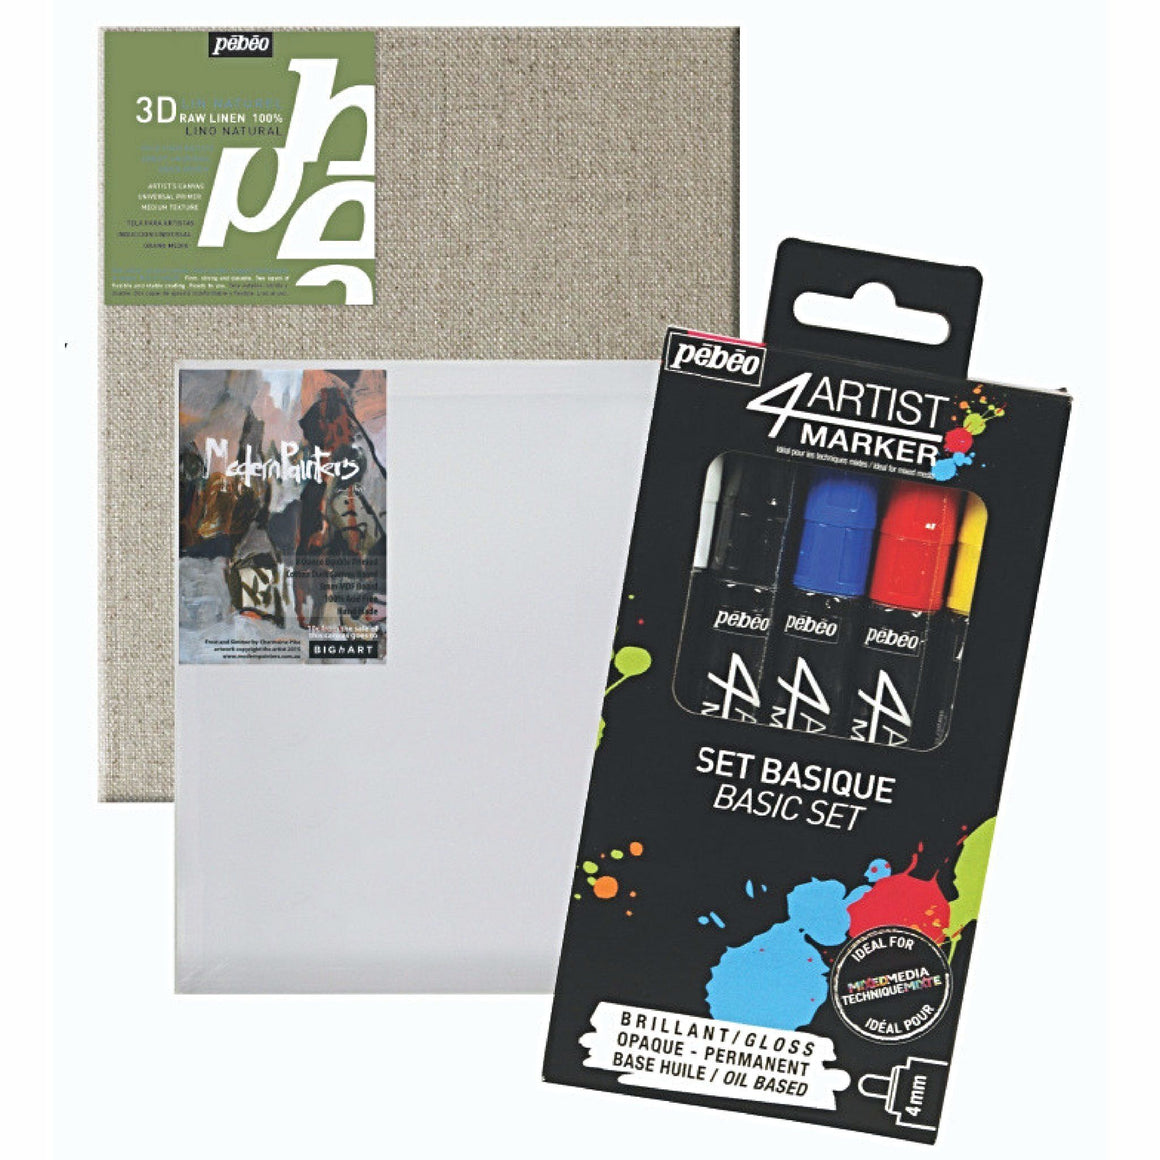 "This set includes a Pébéo 4Artist Markers pack of five colours White, Black, Red, Dark Blue & Yellow, One Modern Painters board 8"" x 10"" (203.2 x 254mm) and One Pébéo Linen panel 10"" x 12"" (254 x 304.8mm)"